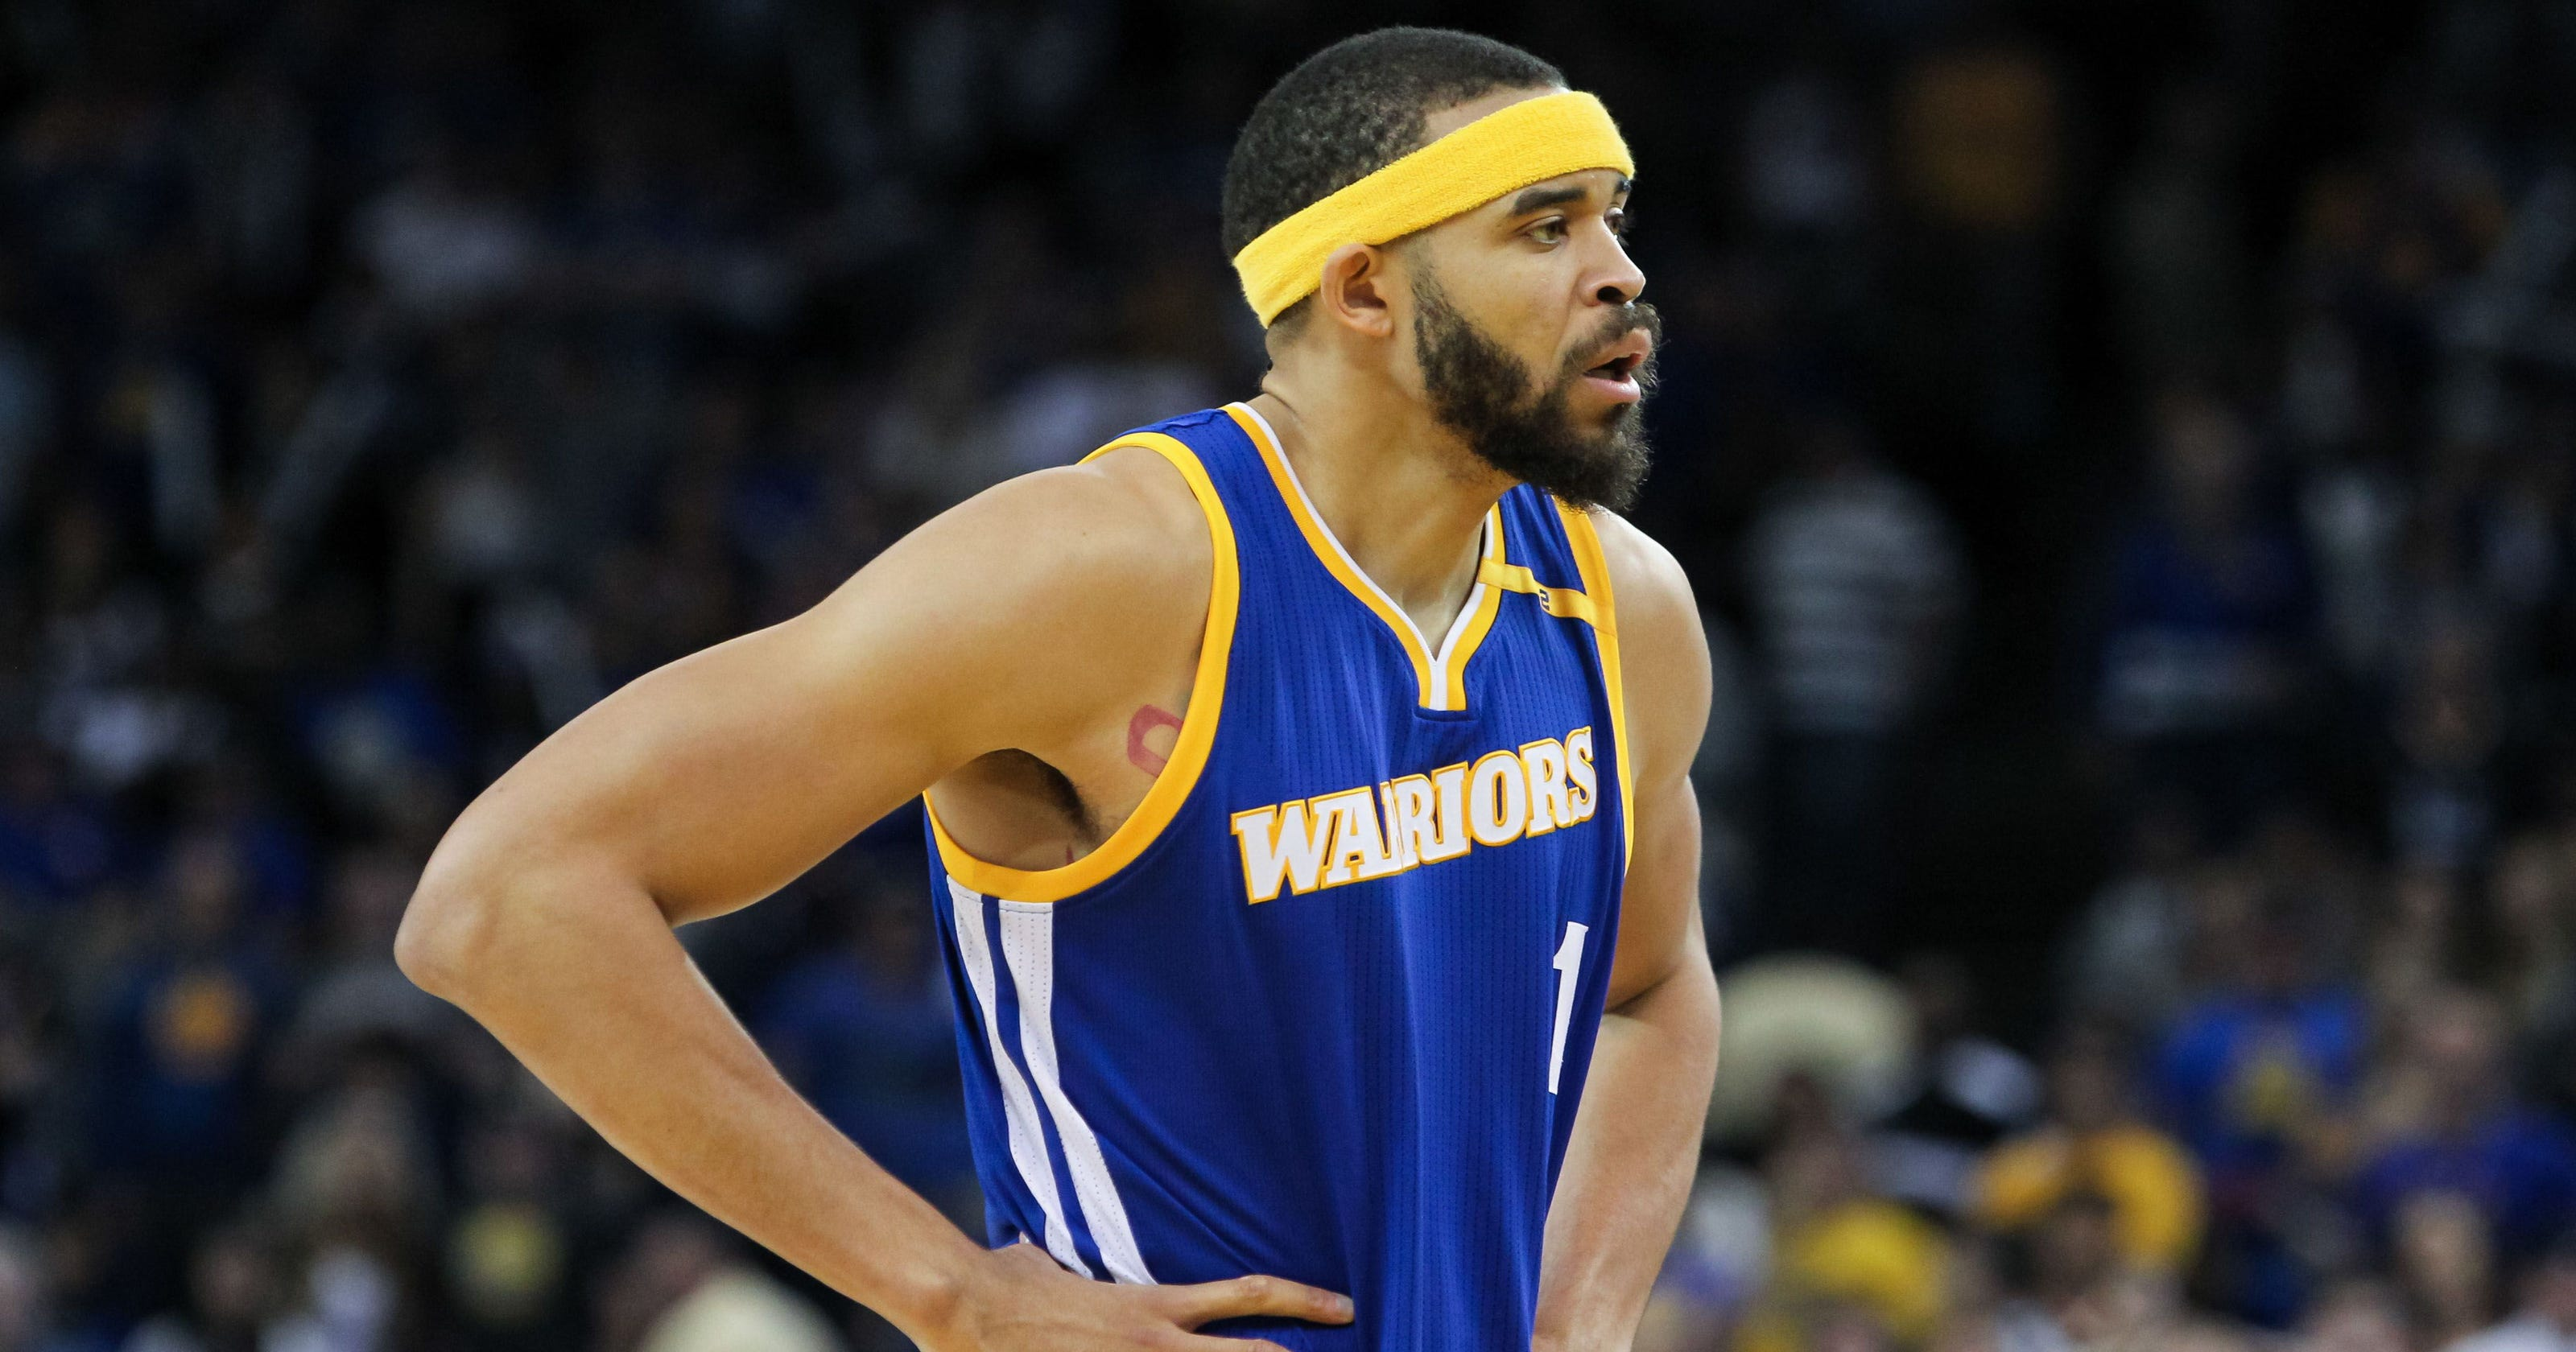 newest 9c5fa c0fc7 Warriors' JaVale McGee responds to criticism from unnamed ...